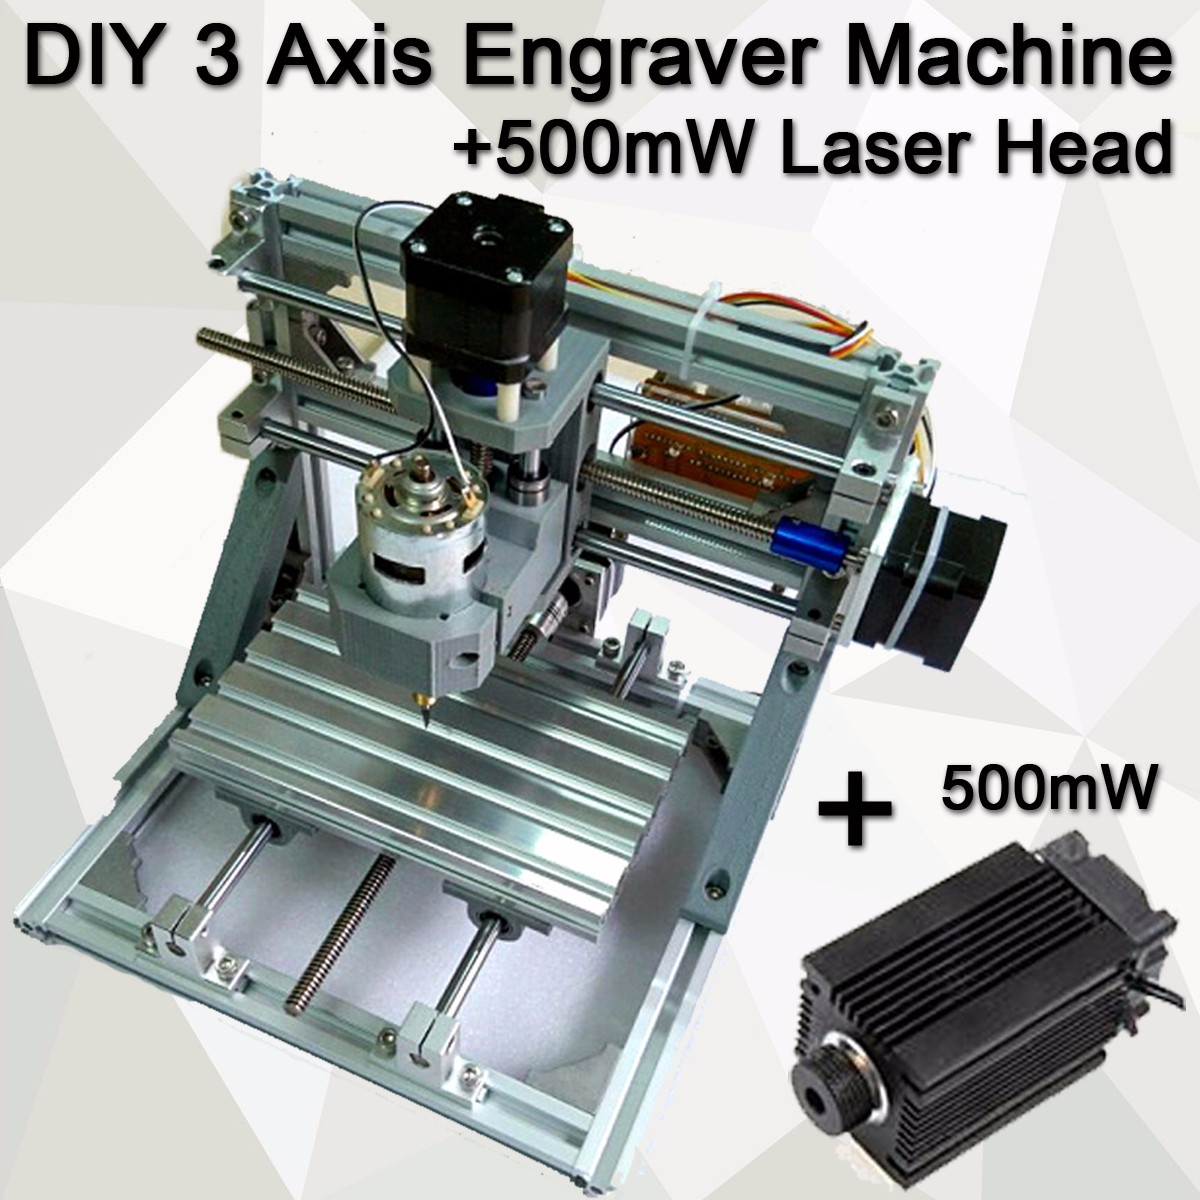 DIY 3 Axis Engraver Machine Milling Wood Carving Engraving With 500mW laser head